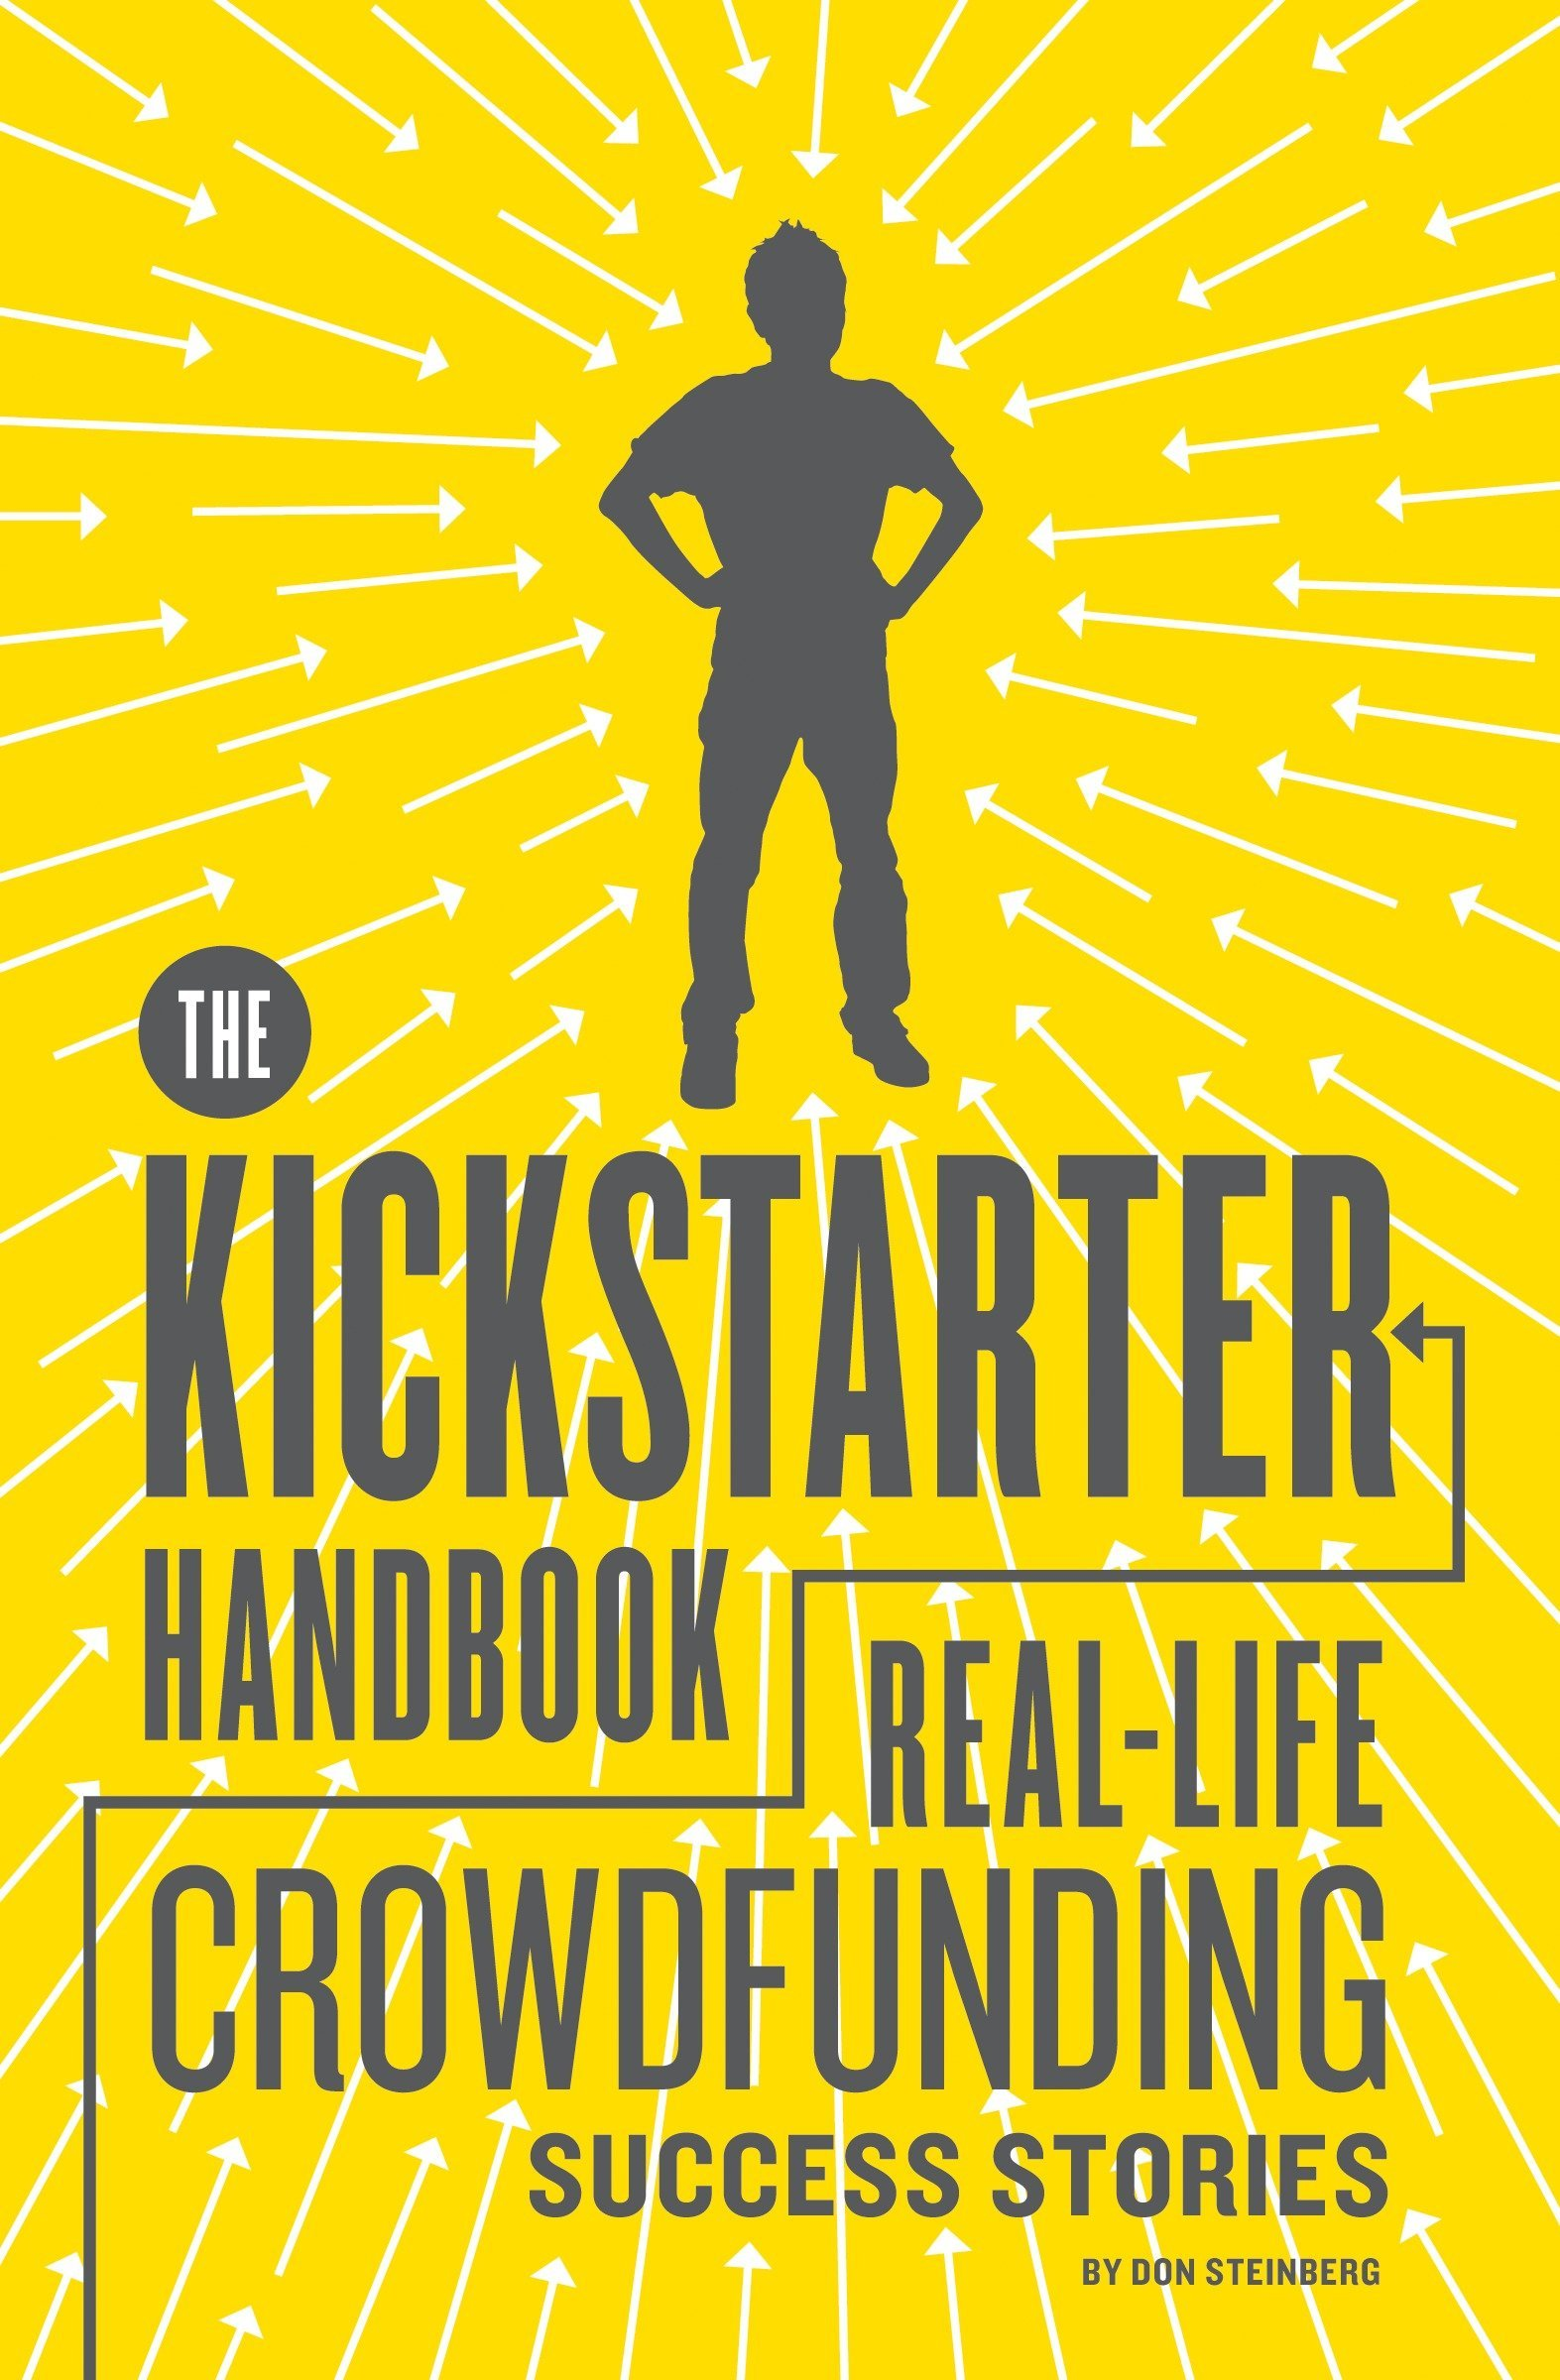 Amazon Com The Kickstarter Handbook Real Life Crowdfunding Success Stories 9781594746086 Steinberg Don Books